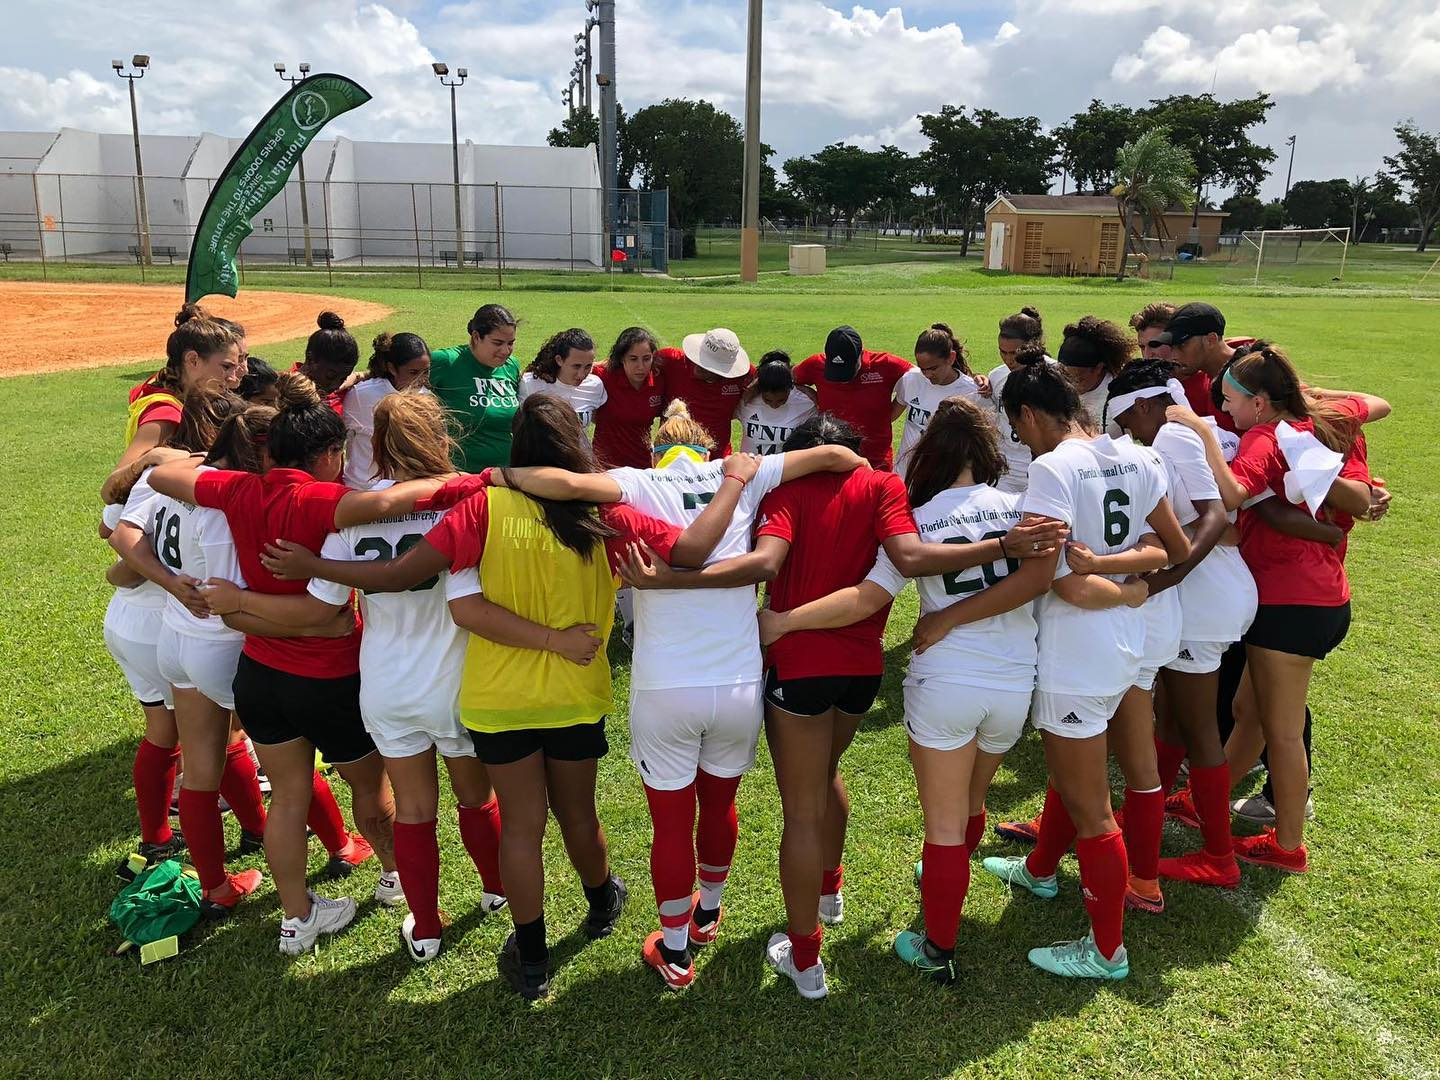 FNU Women's soccer team huddling up in a circle